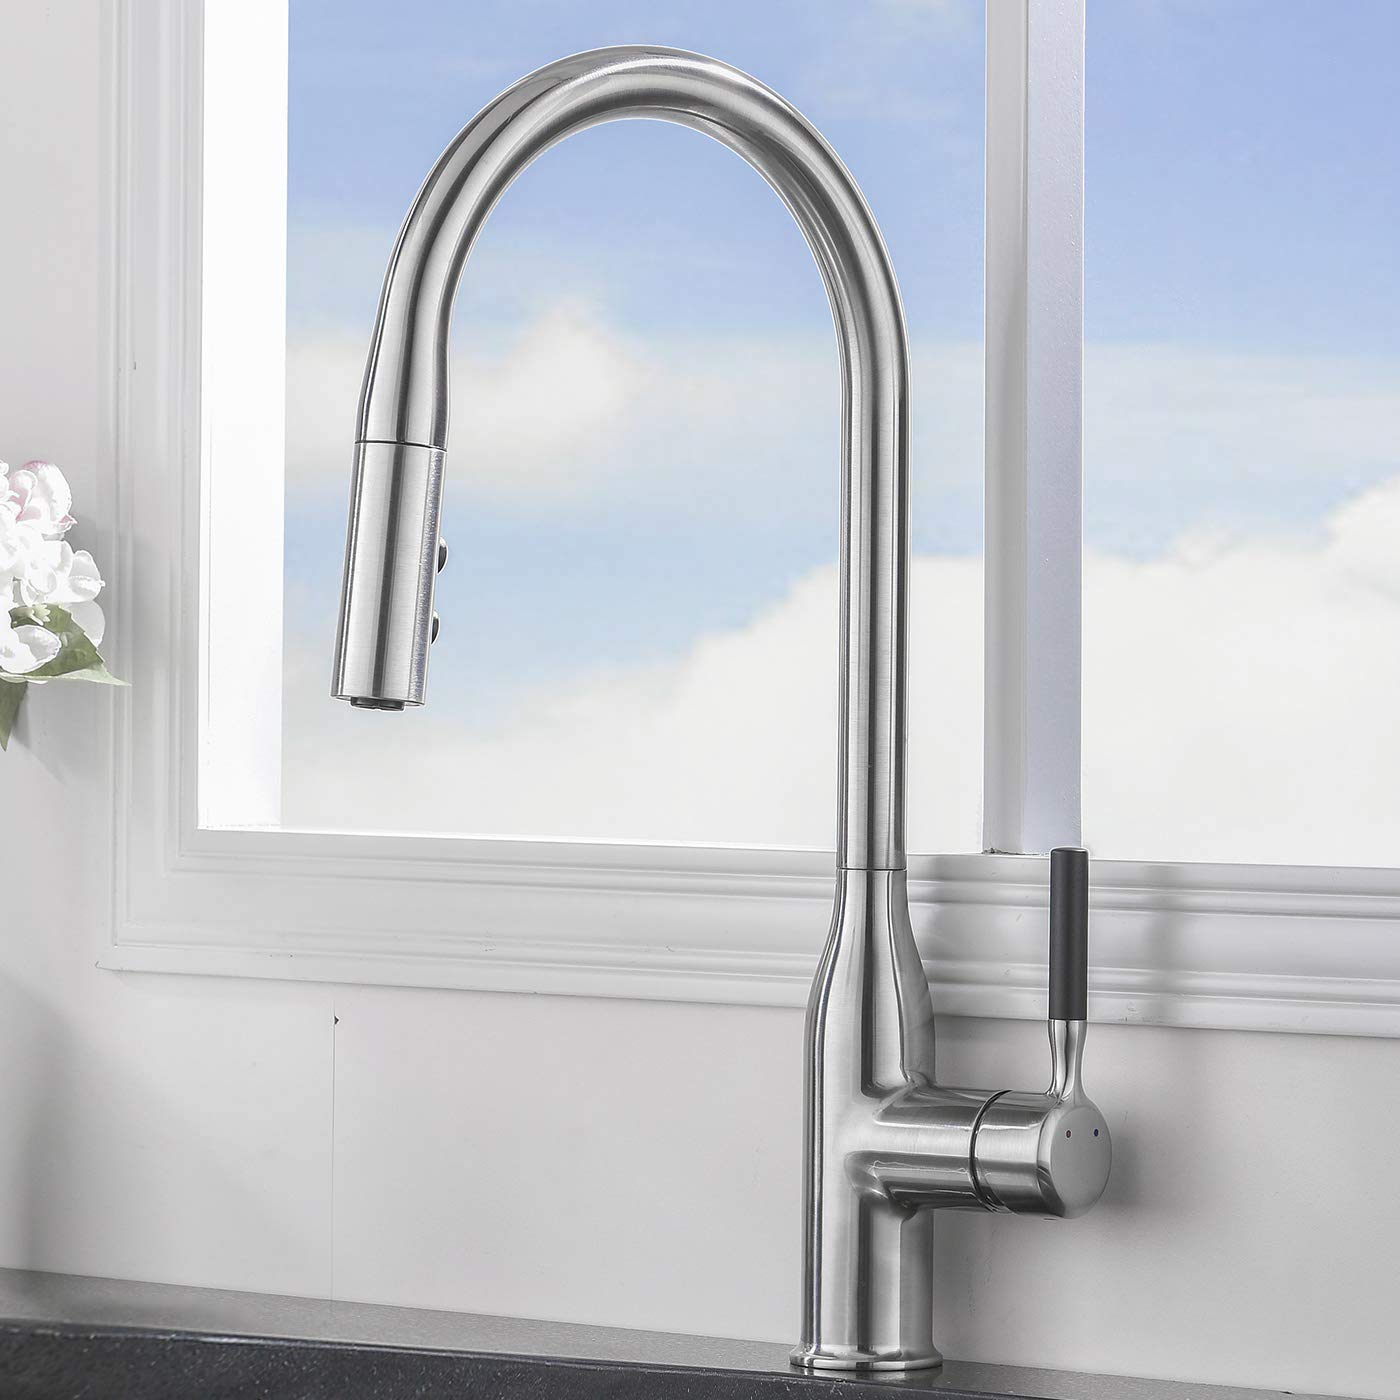 Comllen Commercial Single Handle Pull Down Sprayer Kitchen Faucet,Brushed Nickel Stainless Steel High Arc Kitchen sink Faucet Without Deck Plate